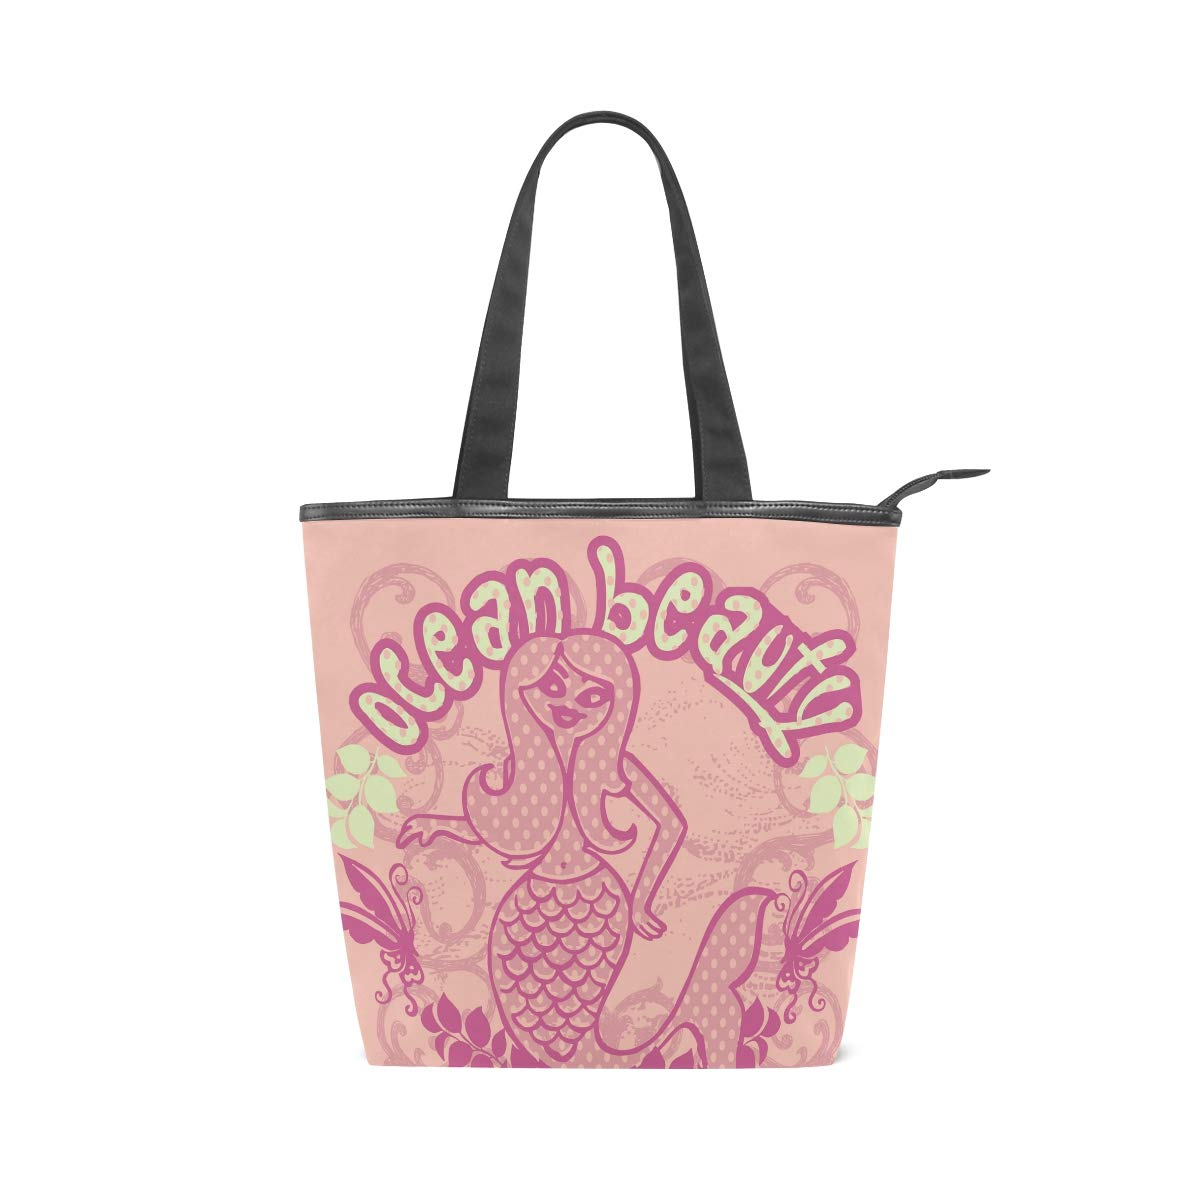 SHANGLONG Fashion Beauty Mermaid Ocean Printed Canvas Tote Bags Women Casual Large Capacity Bags Daily Use